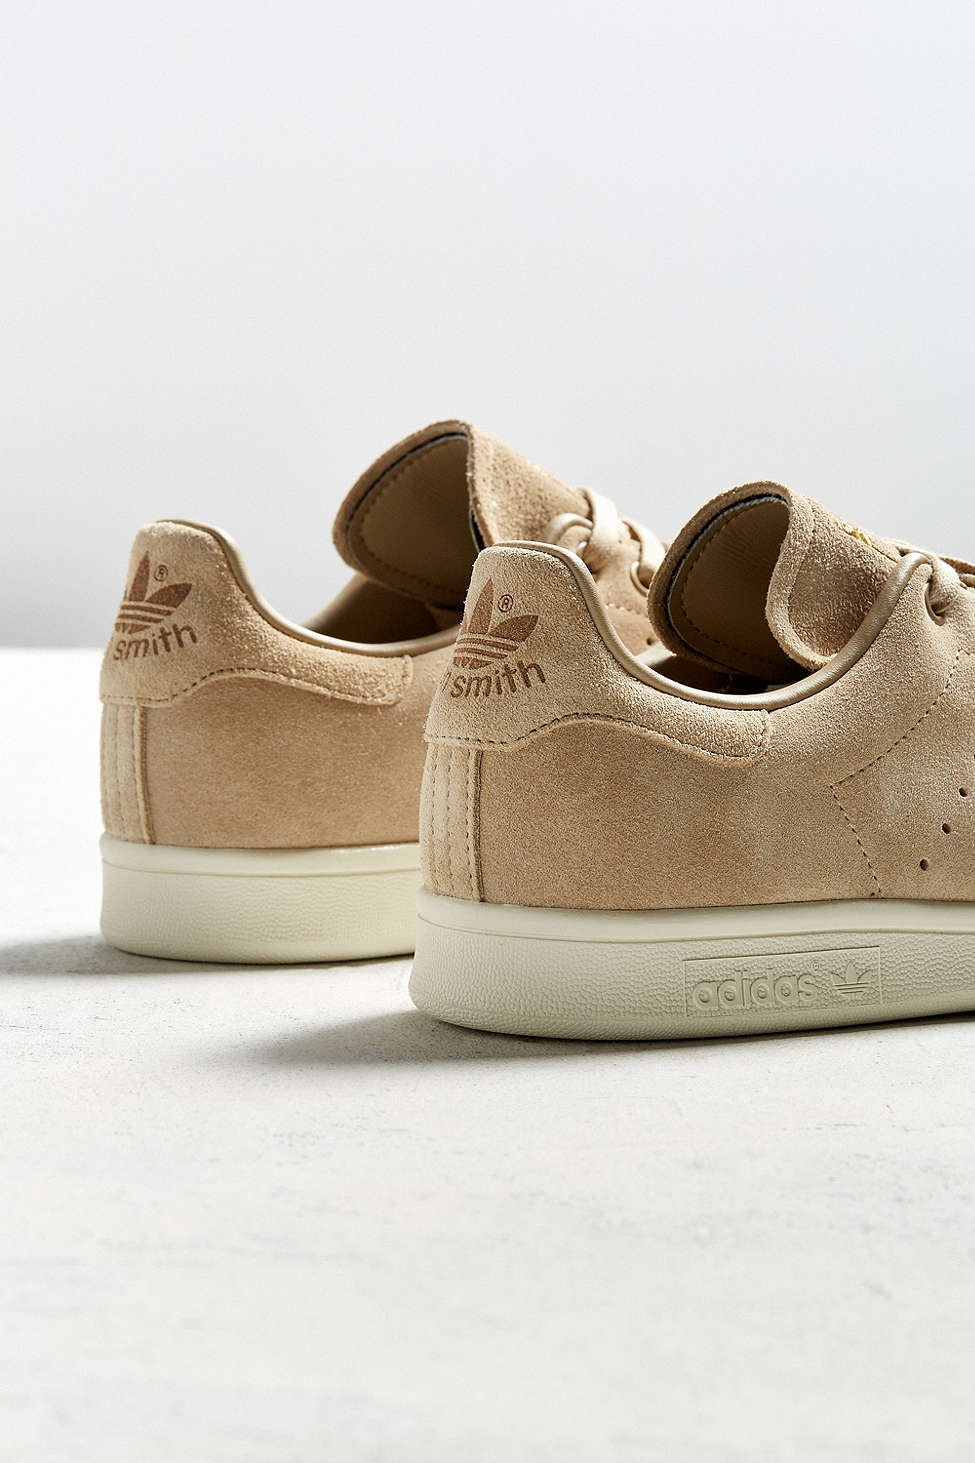 New premium look, same great shoe. #stansmith #adidasoriginals